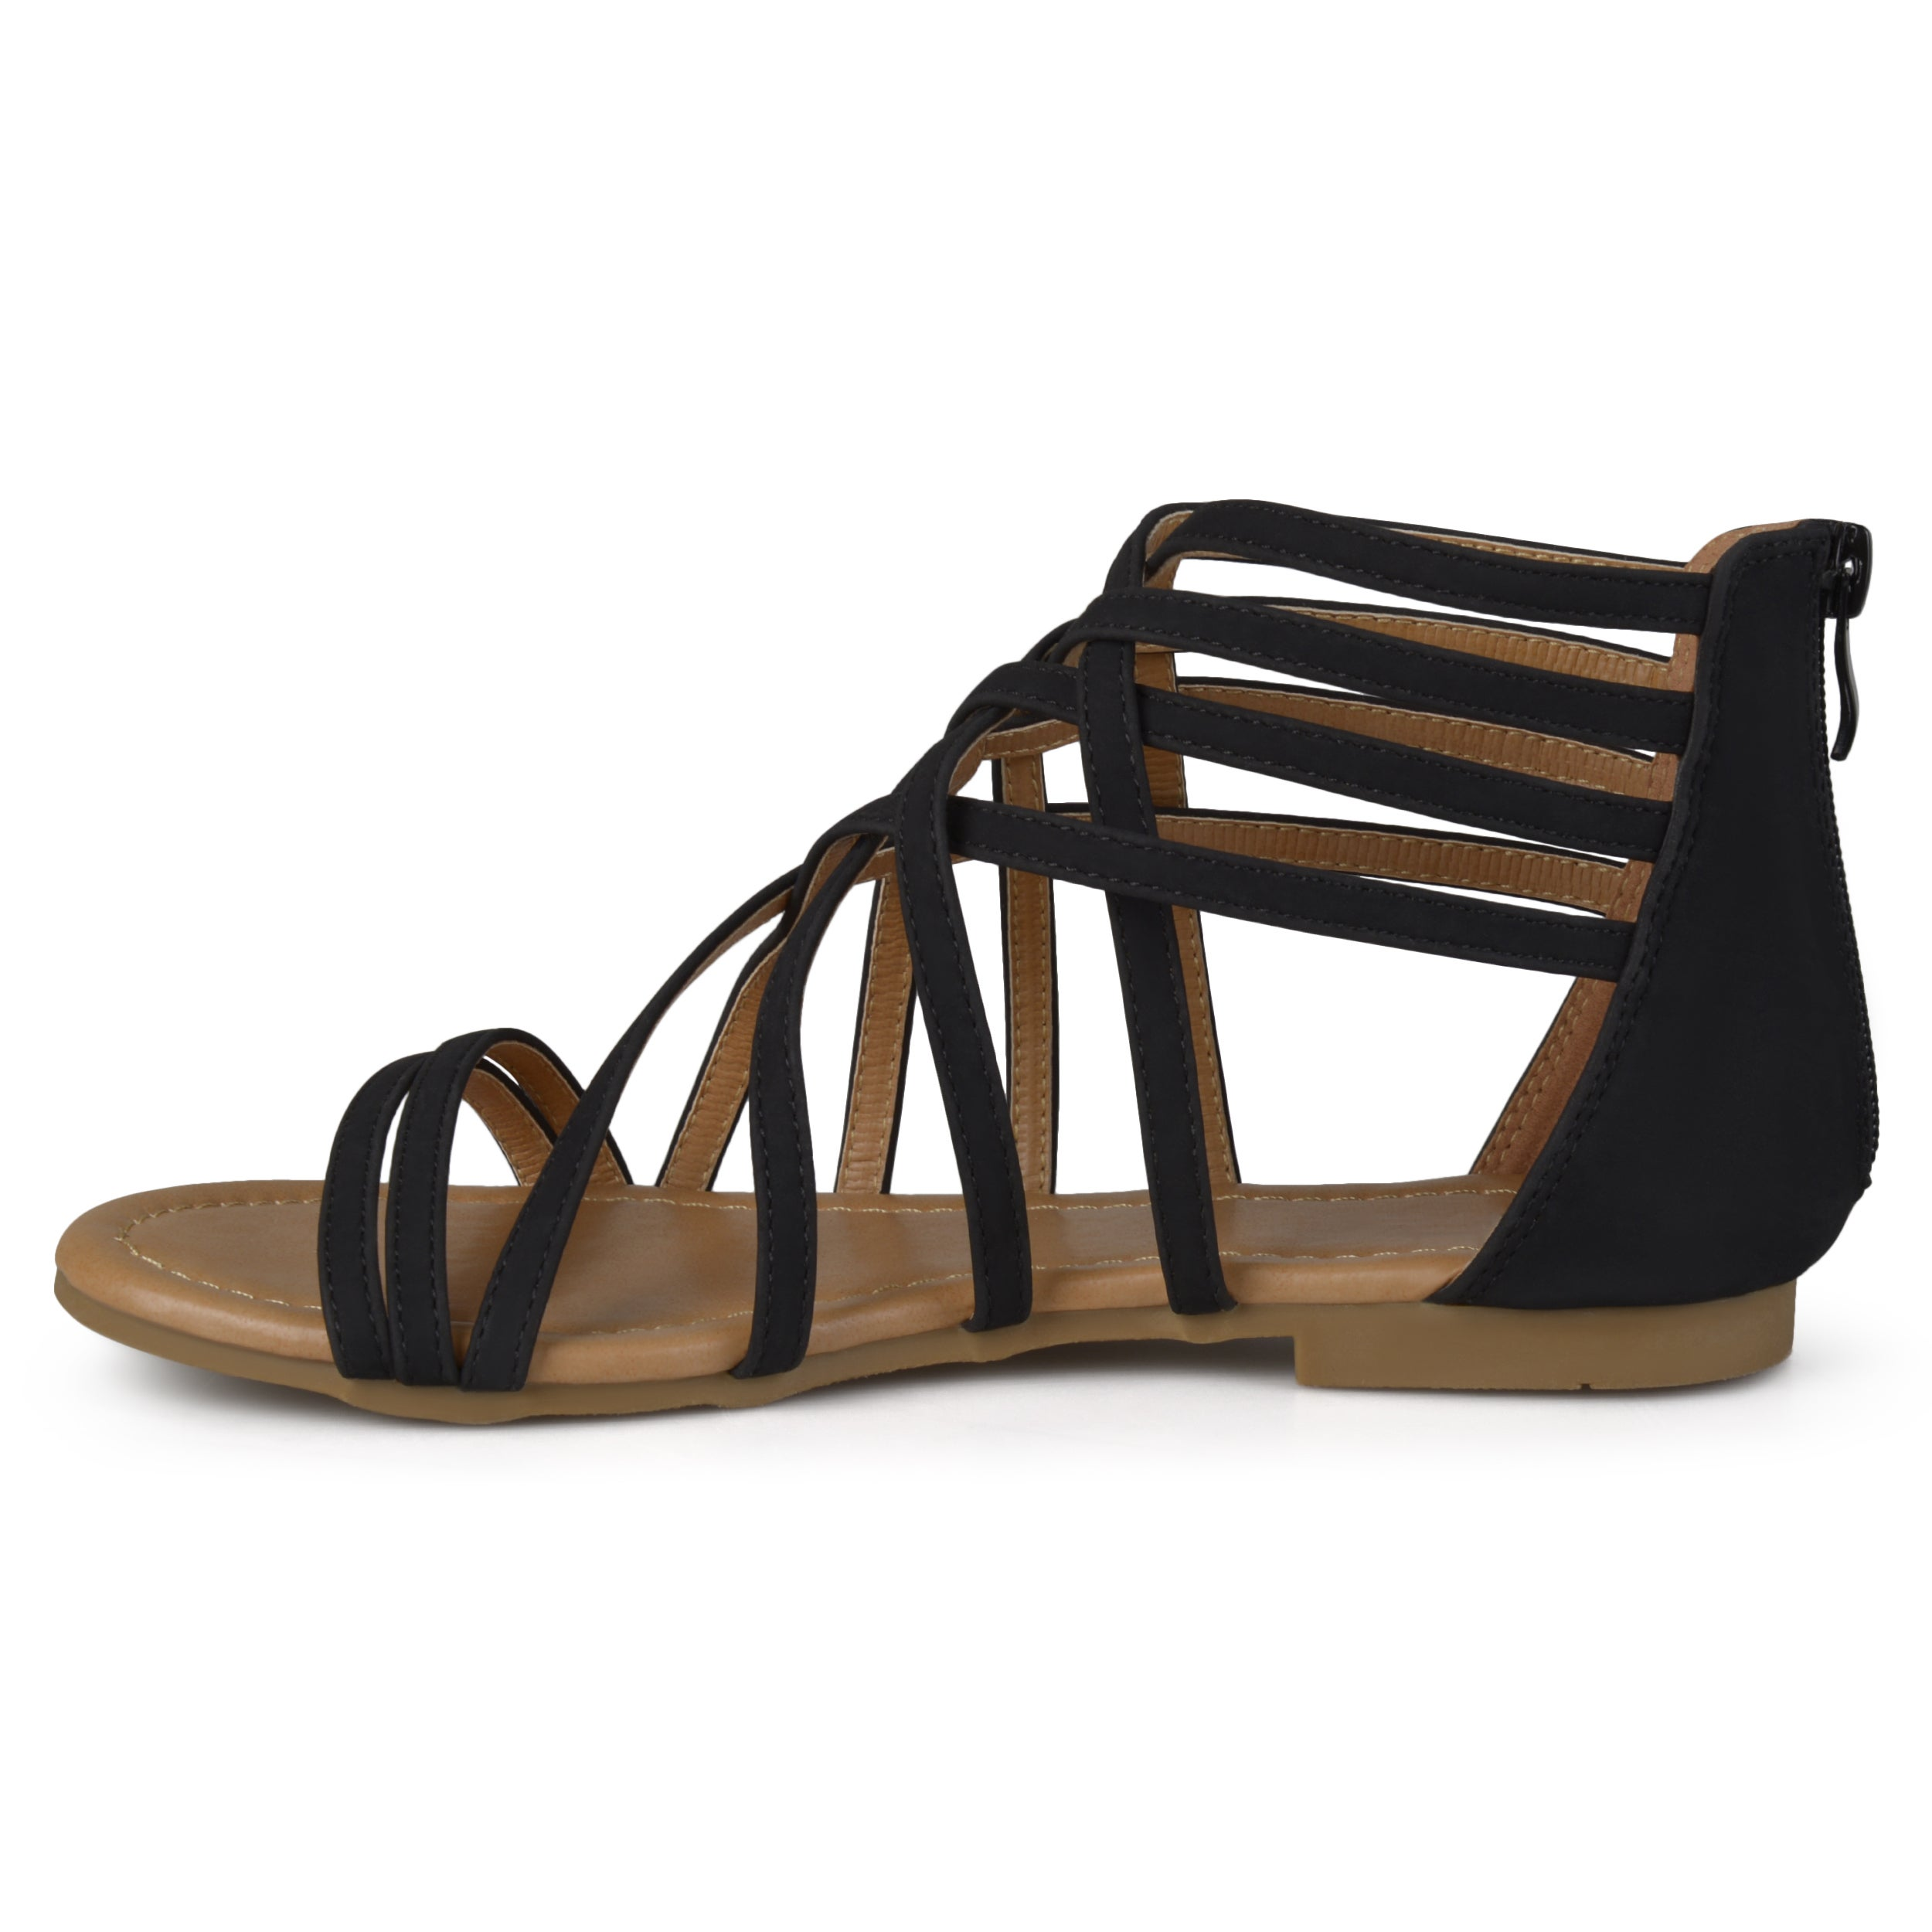 e8e79cdd6ab Shop Journee Collection Women s  Hanni  Flat Gladiator Sandals - Free  Shipping On Orders Over  45 - Overstock - 13989400